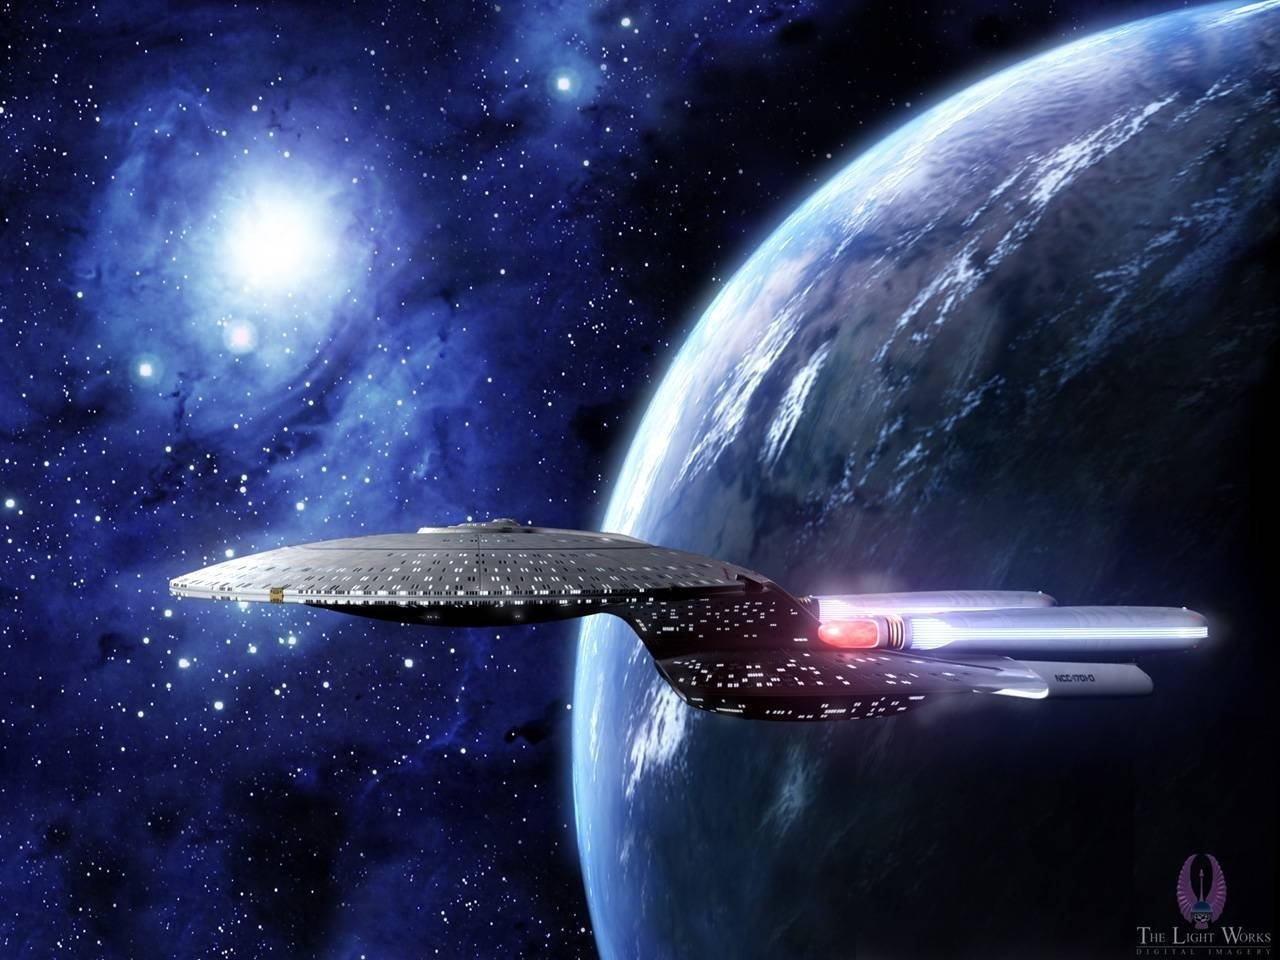 Star Trek Enterprise Next Generation